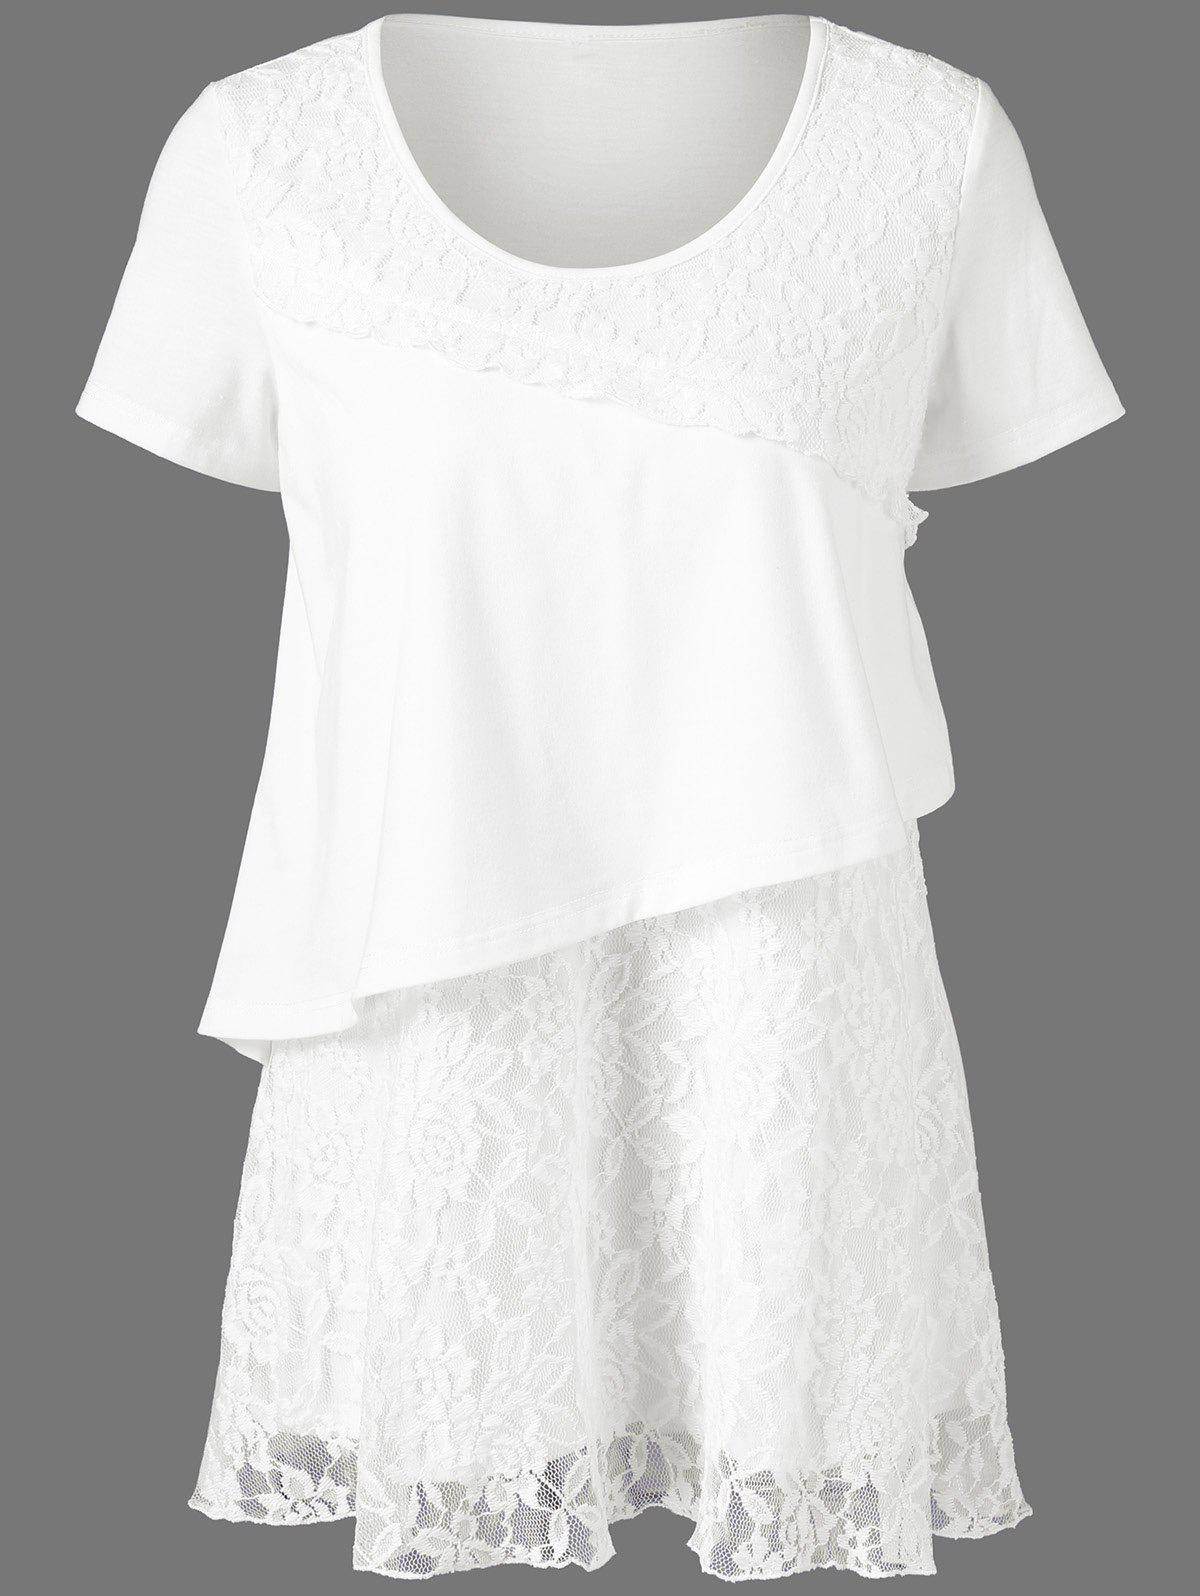 Floral Lace Trim Overlay T-Shirt от Rosegal.com INT